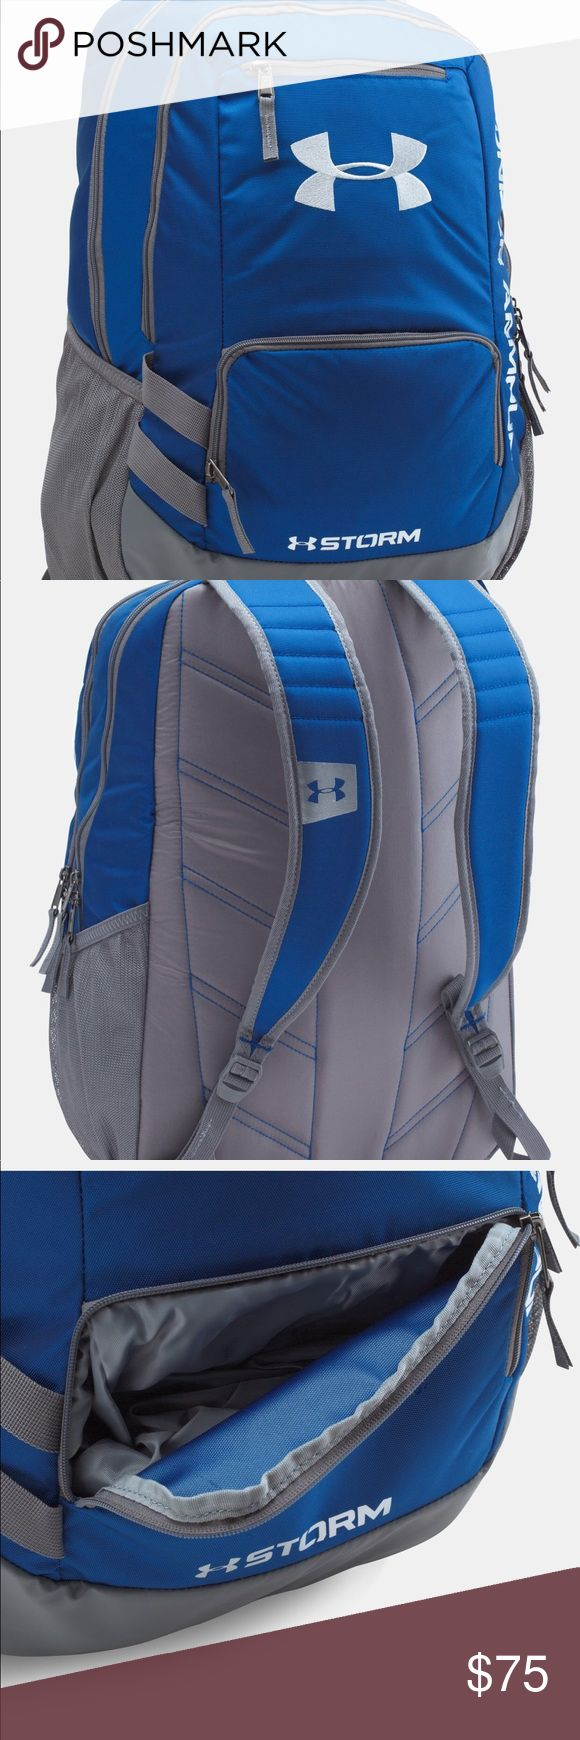 """New Under Armour UA Unisex Backpack Bag UA Storm technology delivers an element-battling, highly water-resistant finish Tough, abrasion-resistant bottom panel Soft-lined laptop sleeve—holds up to 15"""" MacBook Pro® or similarly sized laptop Water-repellent front valuables pocket to keep your stuff safe Adjustable HeatGear® shoulder straps for extra comfort 2 side water bottle pockets Top grab handle Large, gusseted front laundry pocket Dimensions: 18"""" x 13"""" x 8"""" Cubic Volume: 1875…"""